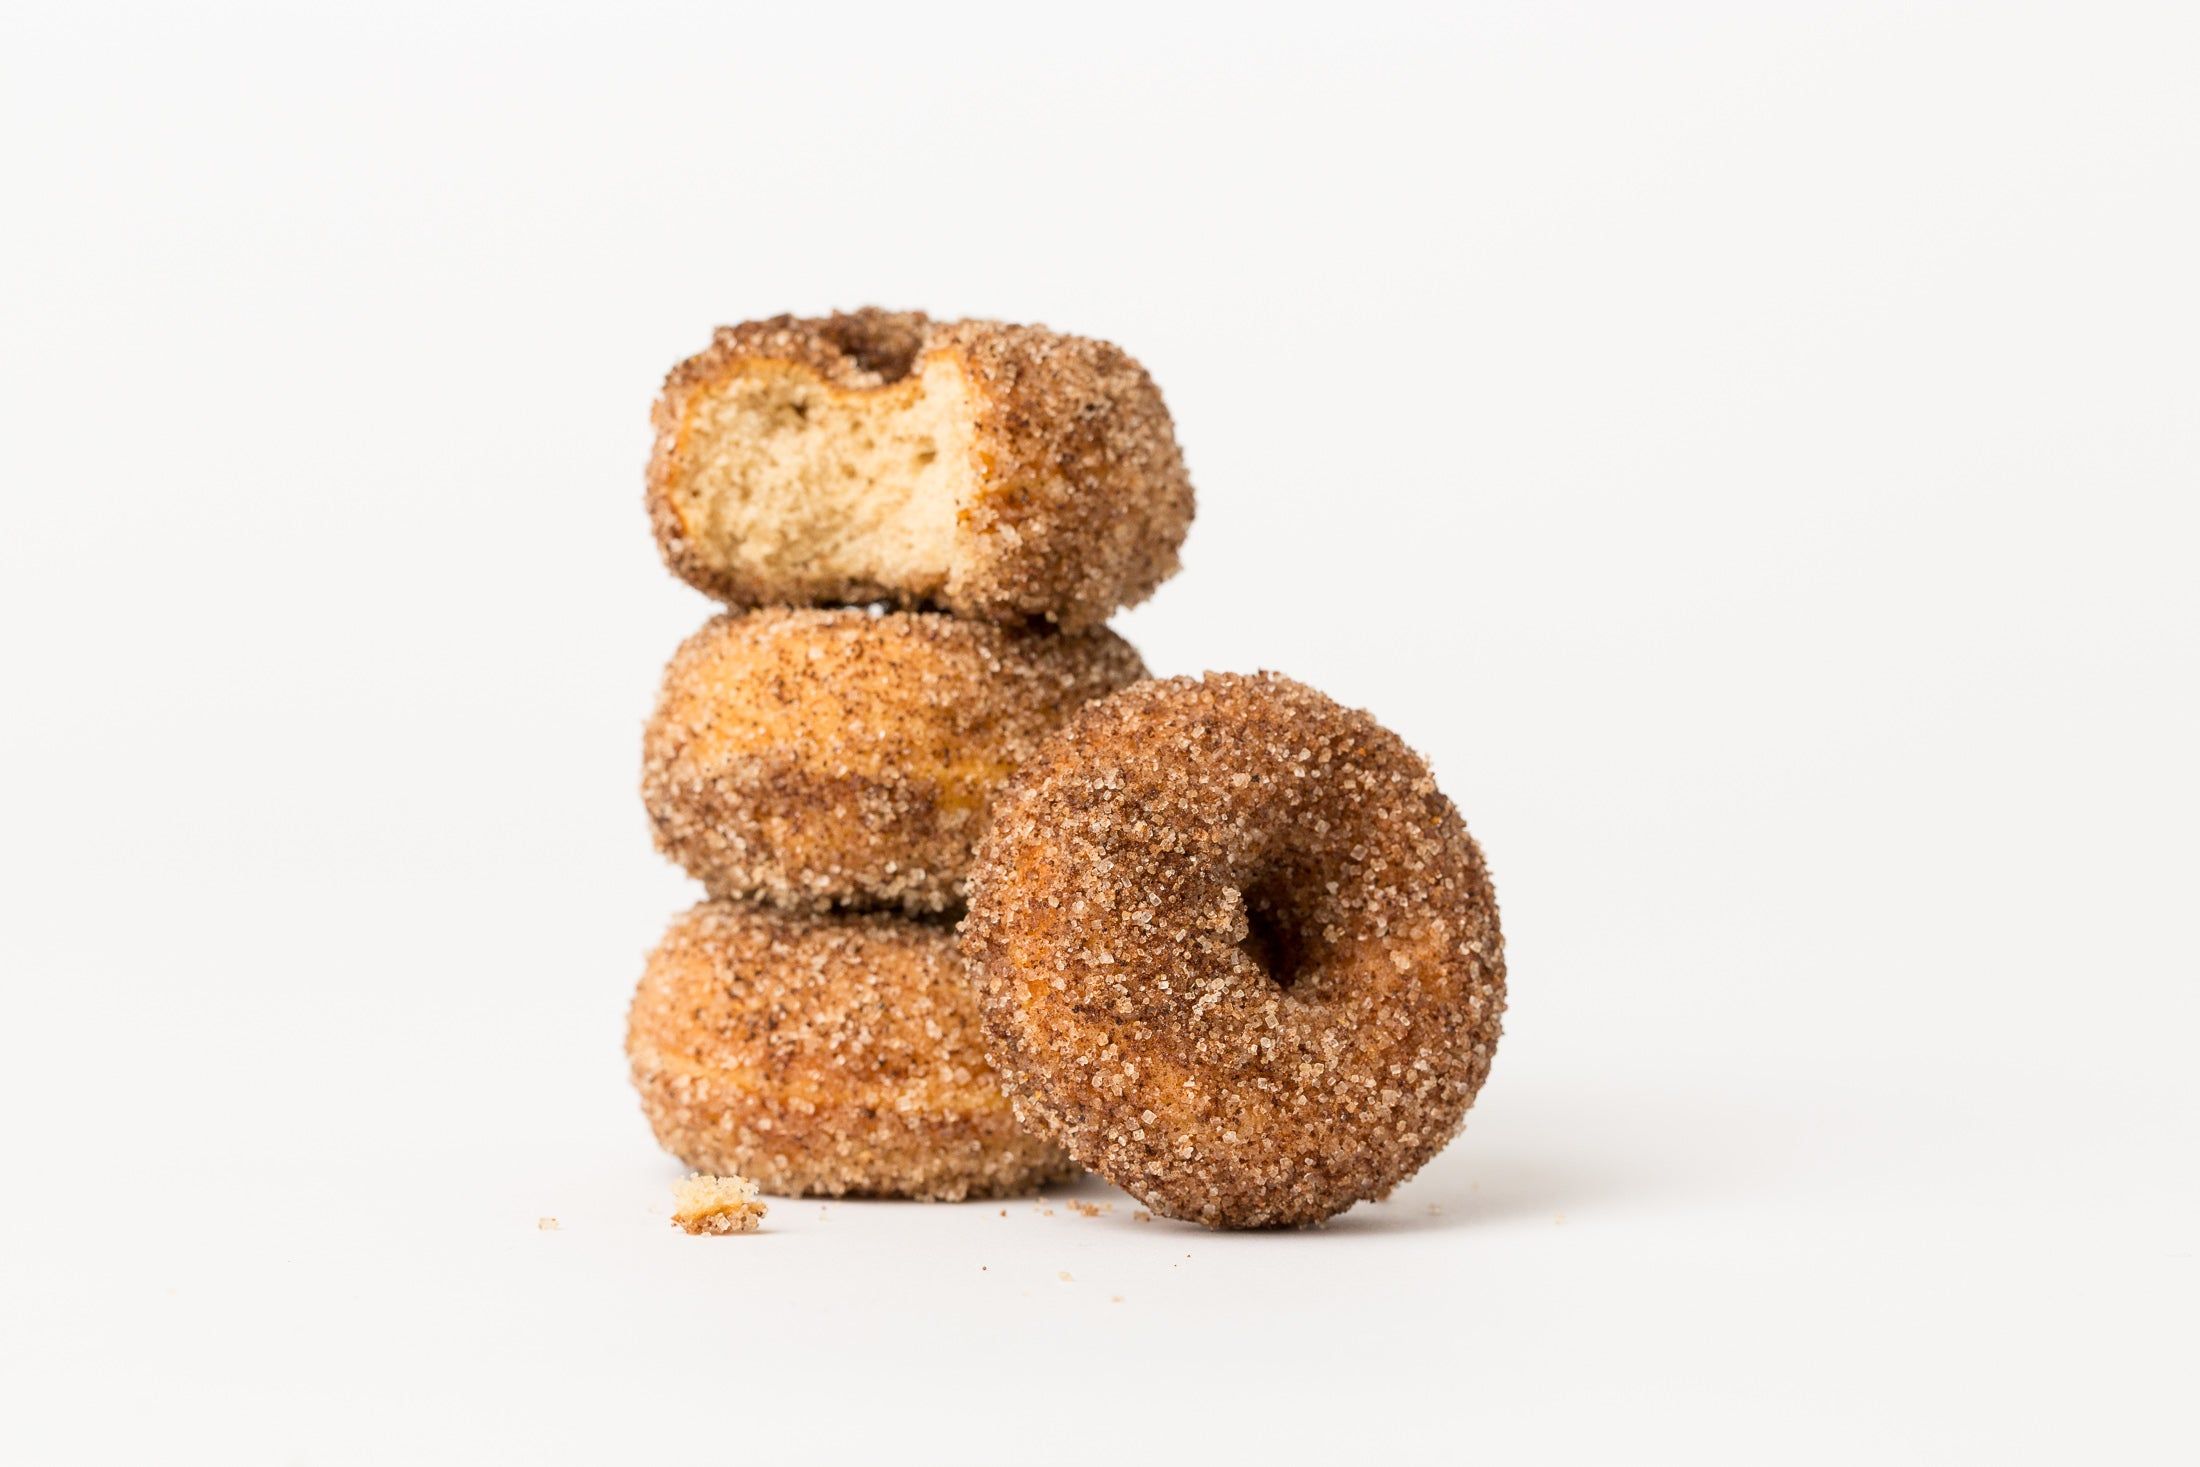 A Miss Jones Baking Co Dirty Chai Mini Donut leaning against a stack of three Miss Jones Baking Co Dirty Chai Mini Donuts with the top donut missing a bite